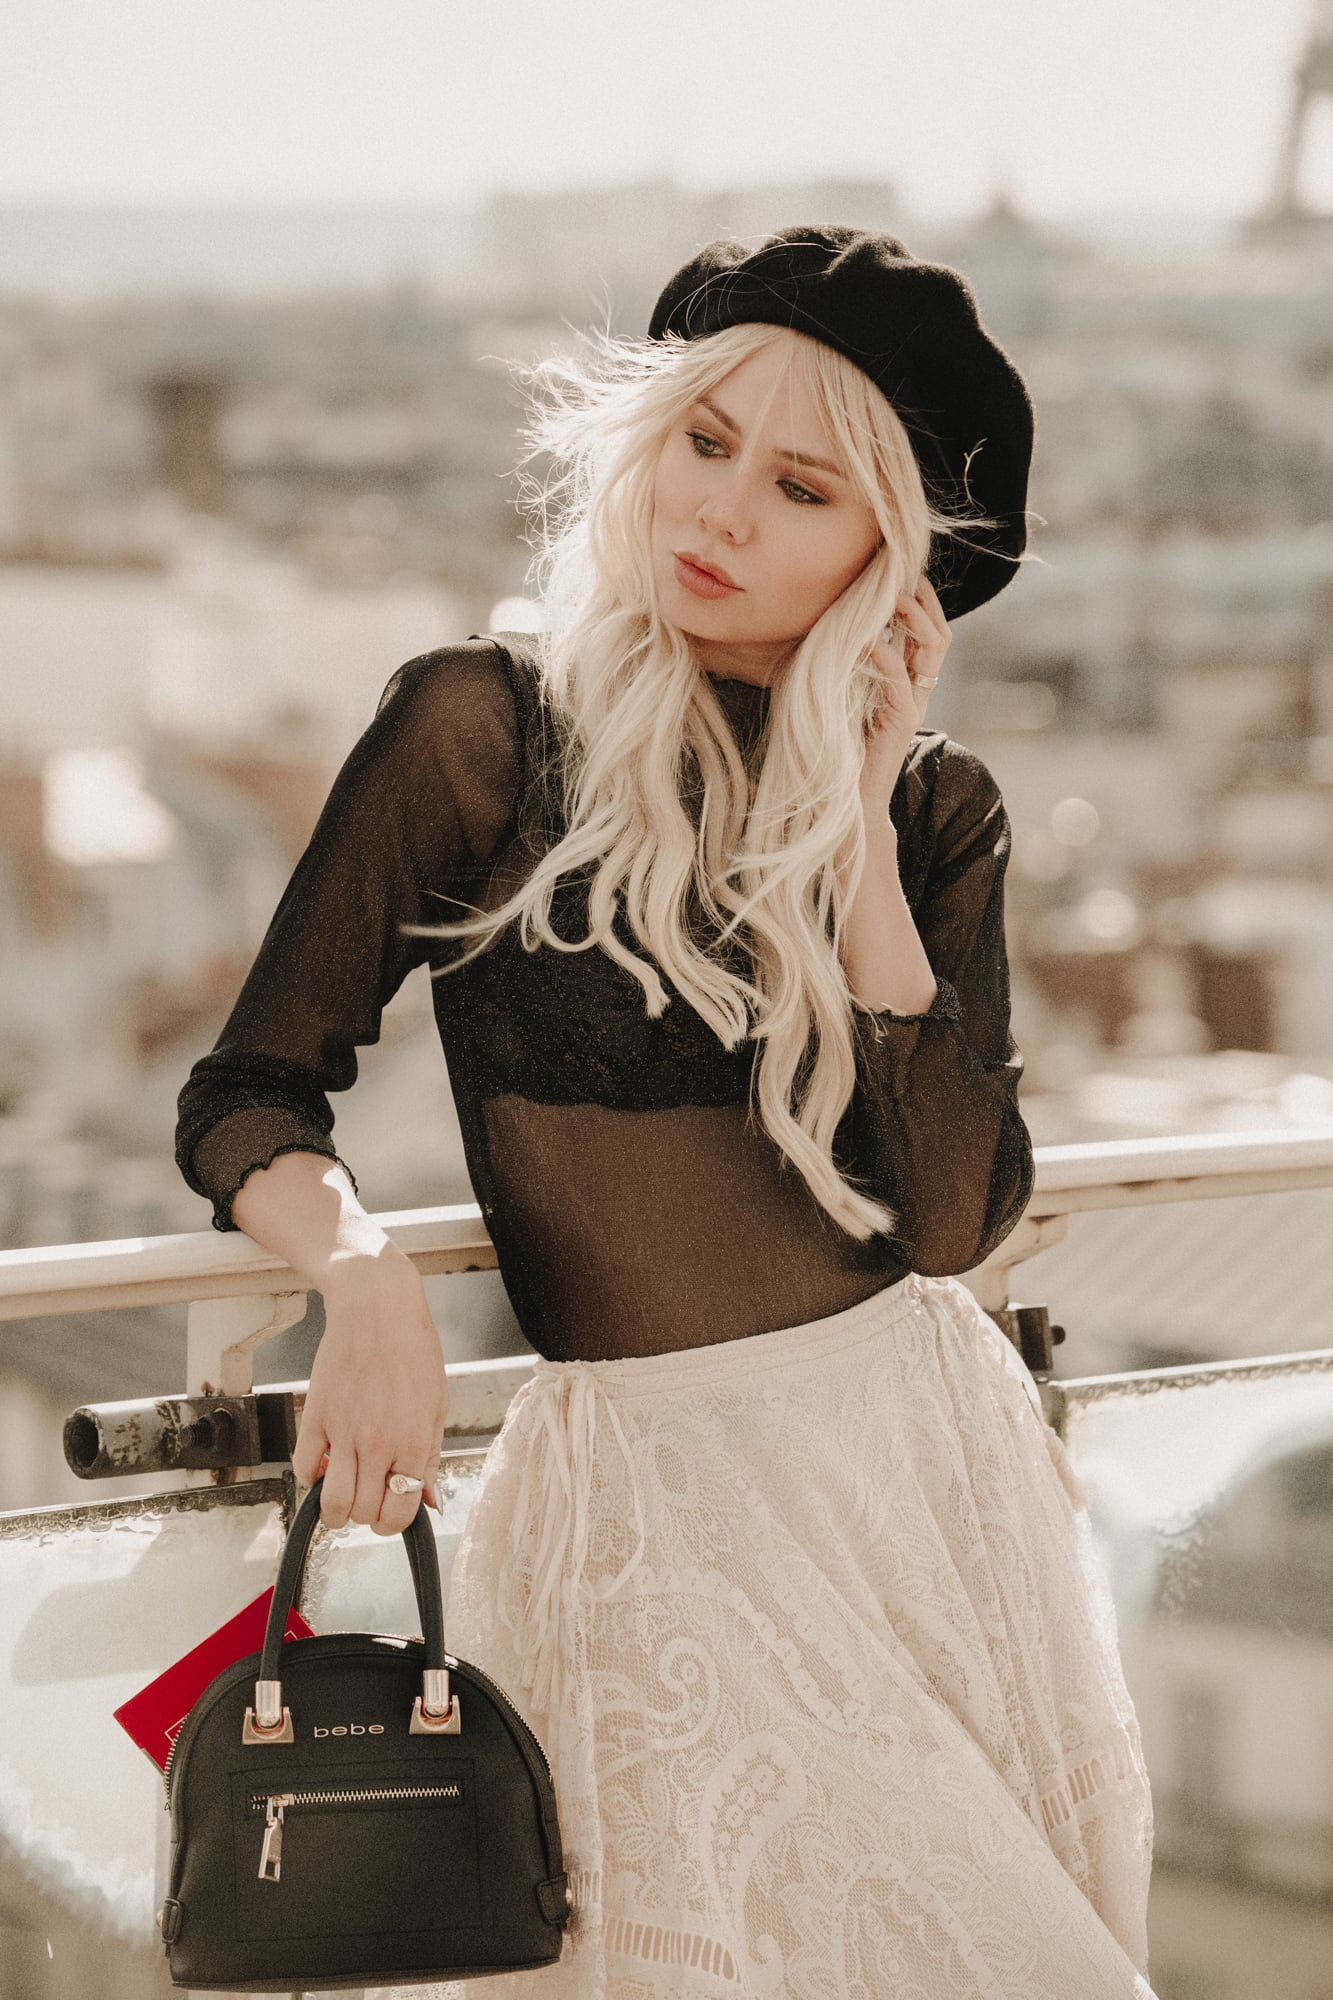 Sarah Loven wearing Spell French boho in Paris